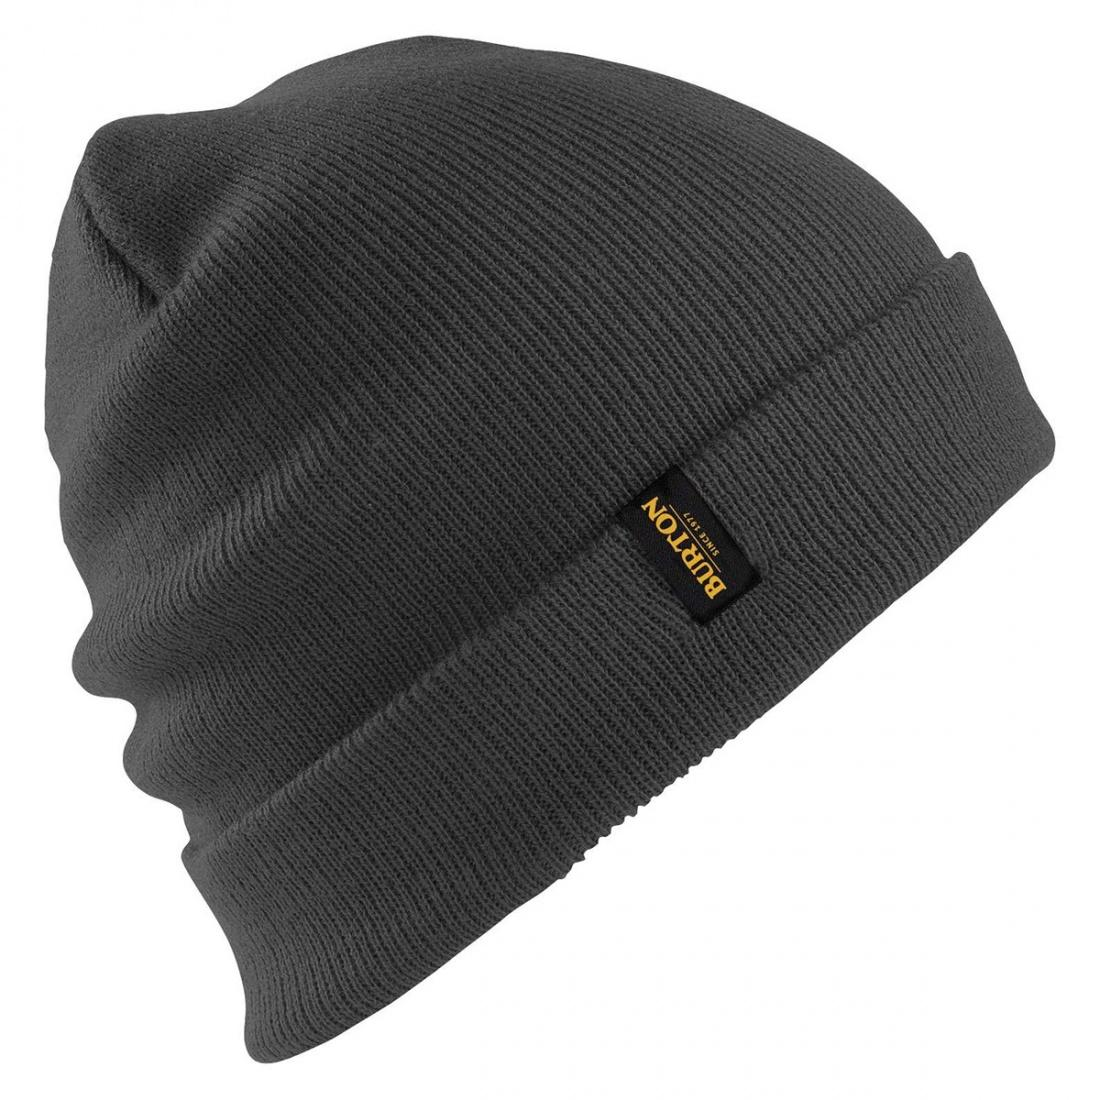 Burton Шапка Burton Kactusbunch Beanie FADED One size шапка носок женская burton lamb pom beanie true black